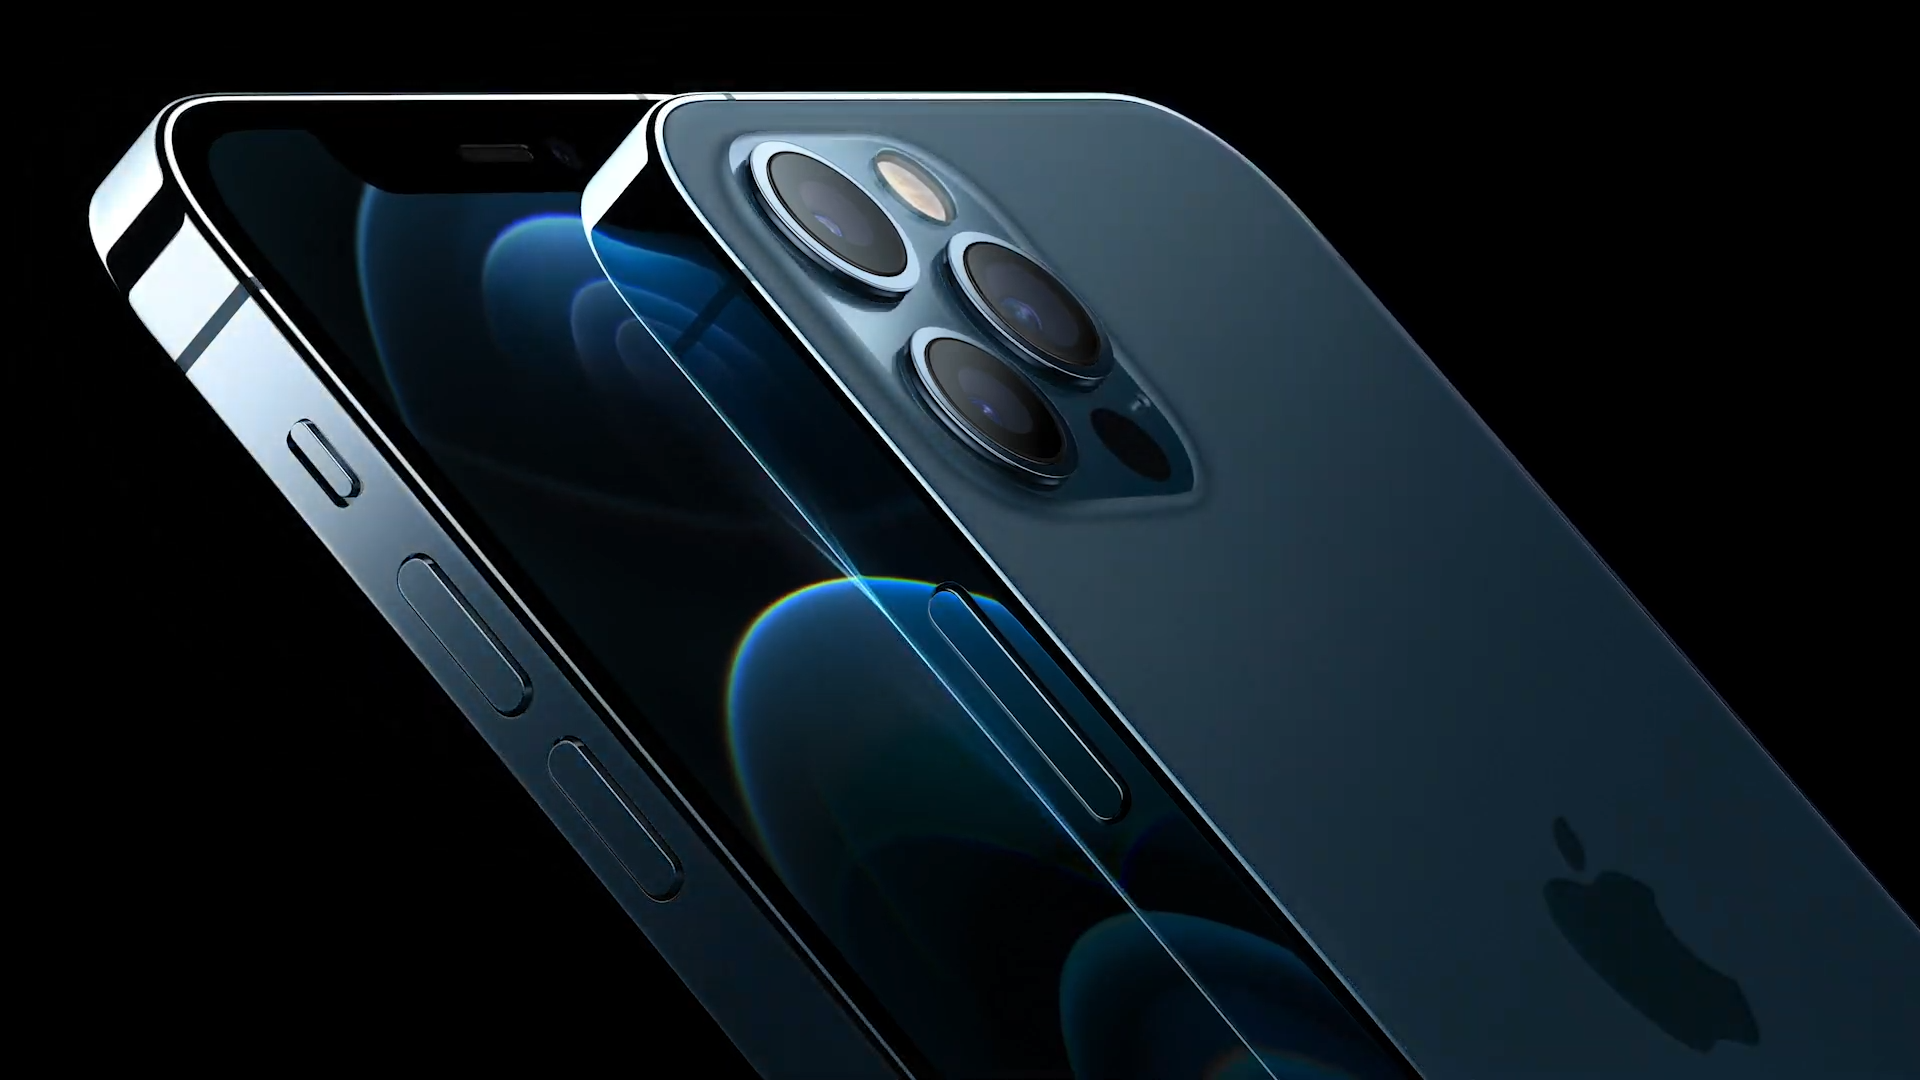 1602618032 997 Apple officially unveils iPhone 12 iPhone 12 mini iPhone 12